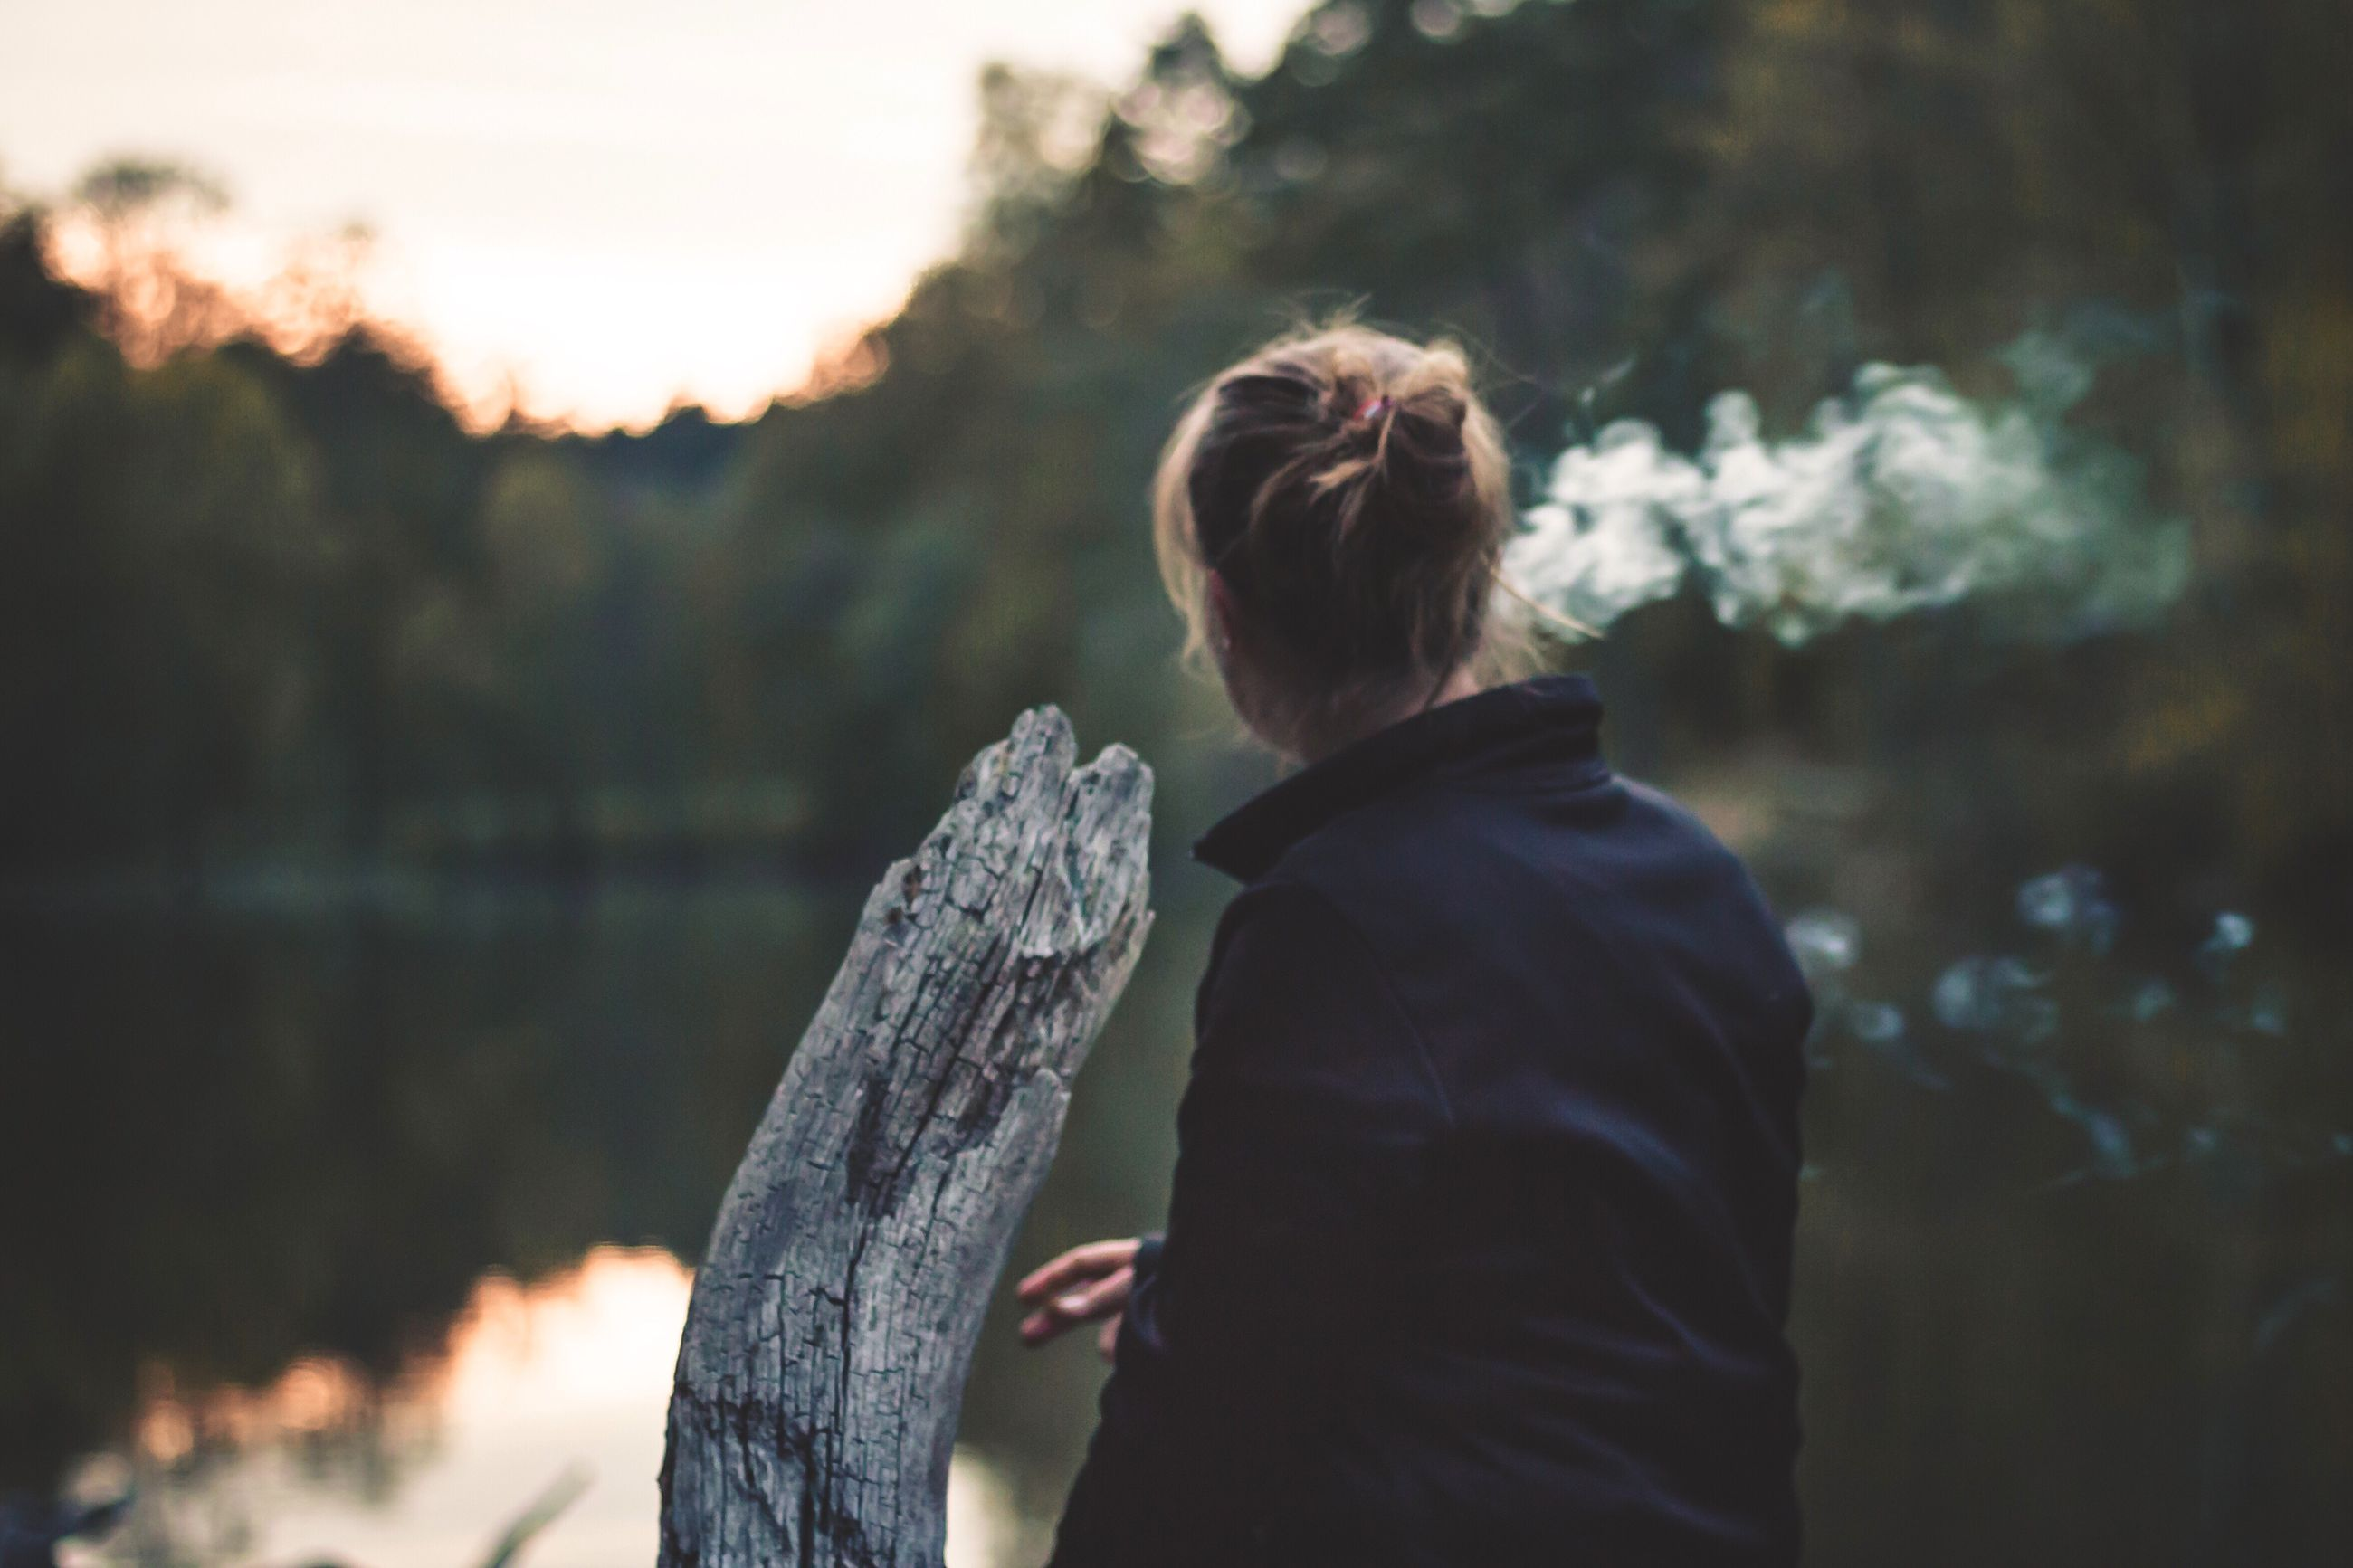 focus on foreground, rear view, lifestyles, waist up, casual clothing, leisure activity, standing, three quarter length, person, side view, outdoors, childhood, long hair, nature, tree, day, headshot, warm clothing